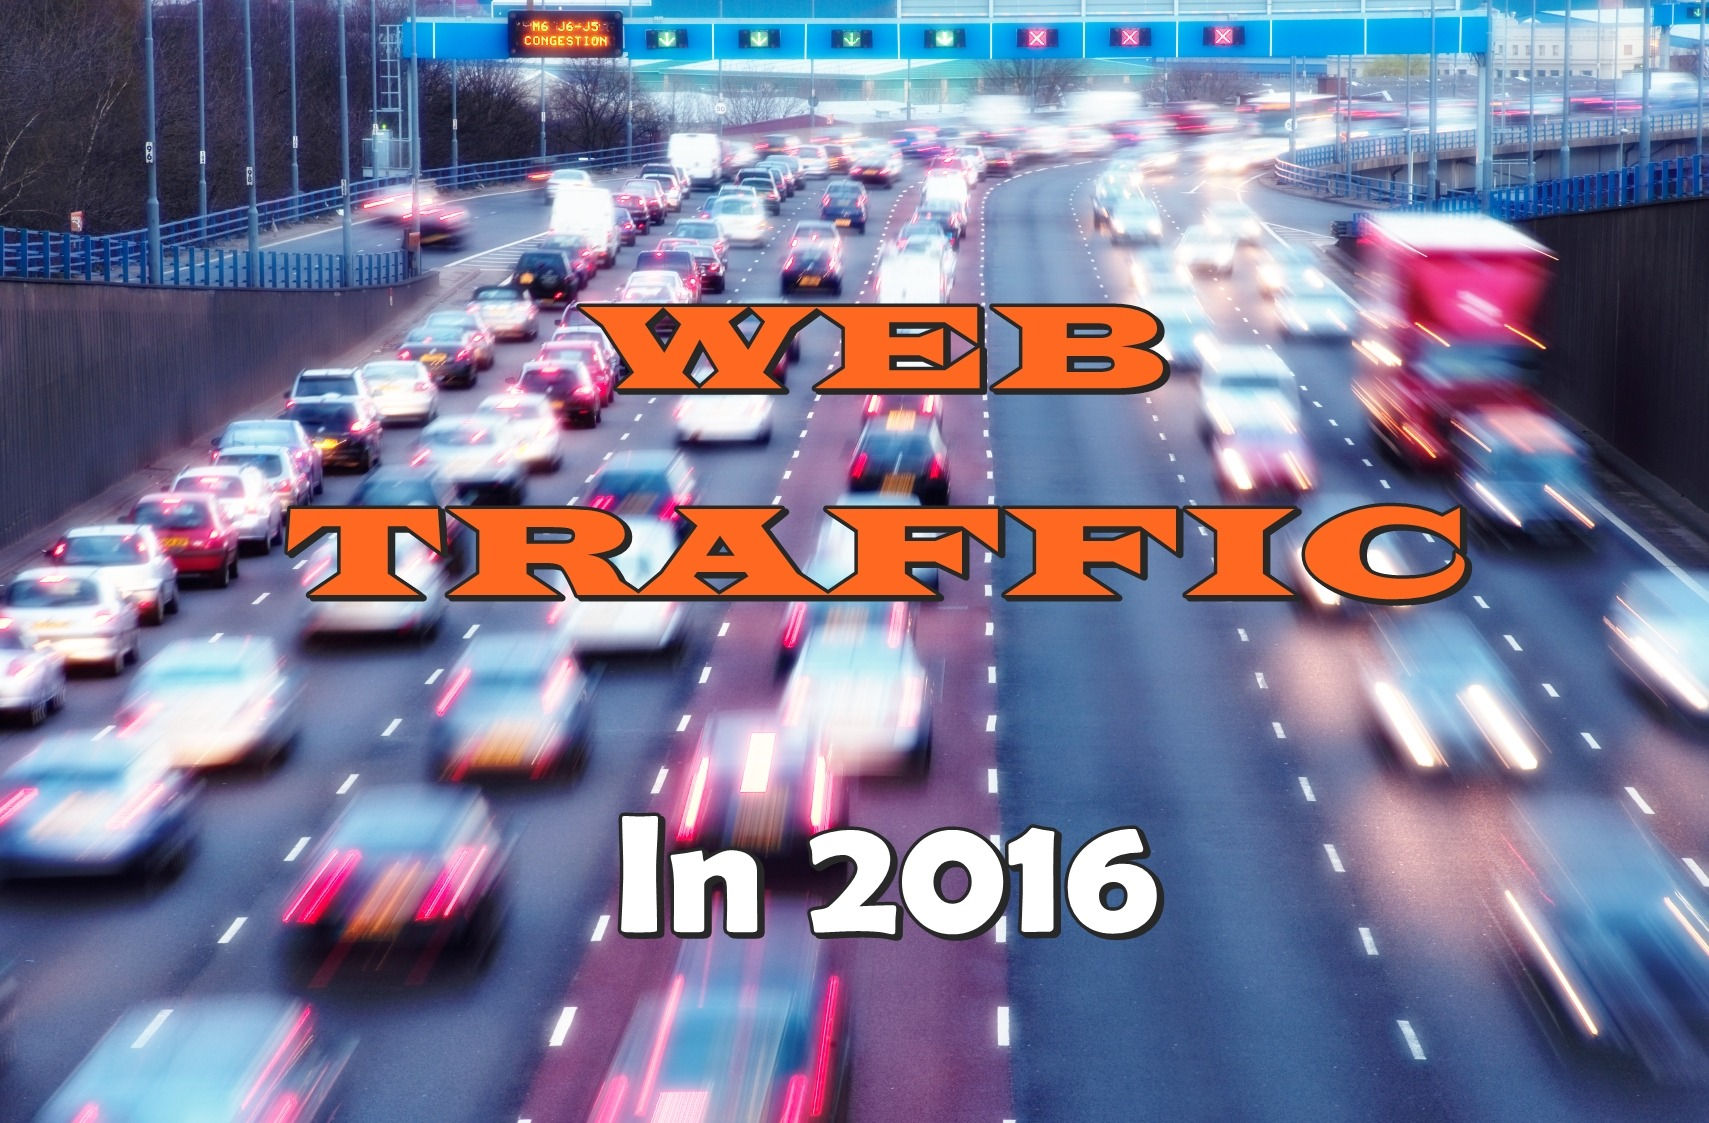 WebTraffic